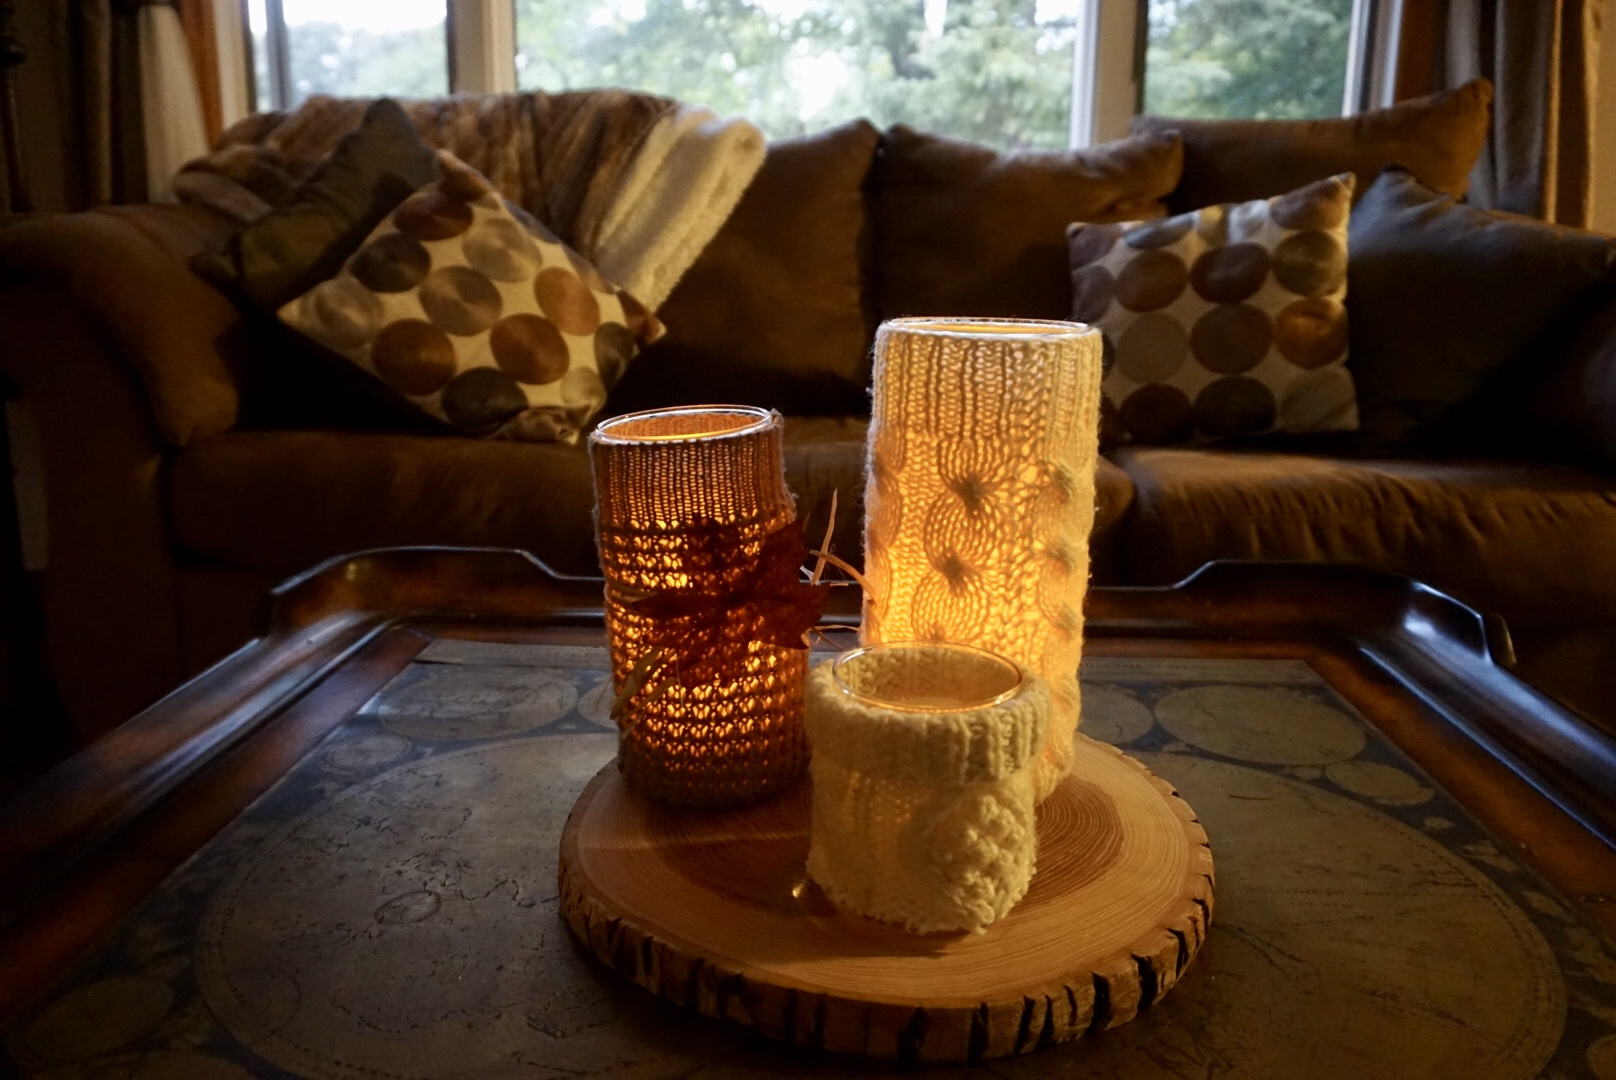 It's time for all things cozy! Click here to learn how to make these NO SEW sweater candles! | Legally Crafty #sweatercandles #diydecor #budgetdecor #fallcrafts #wintercrafts #thriftstoredecor